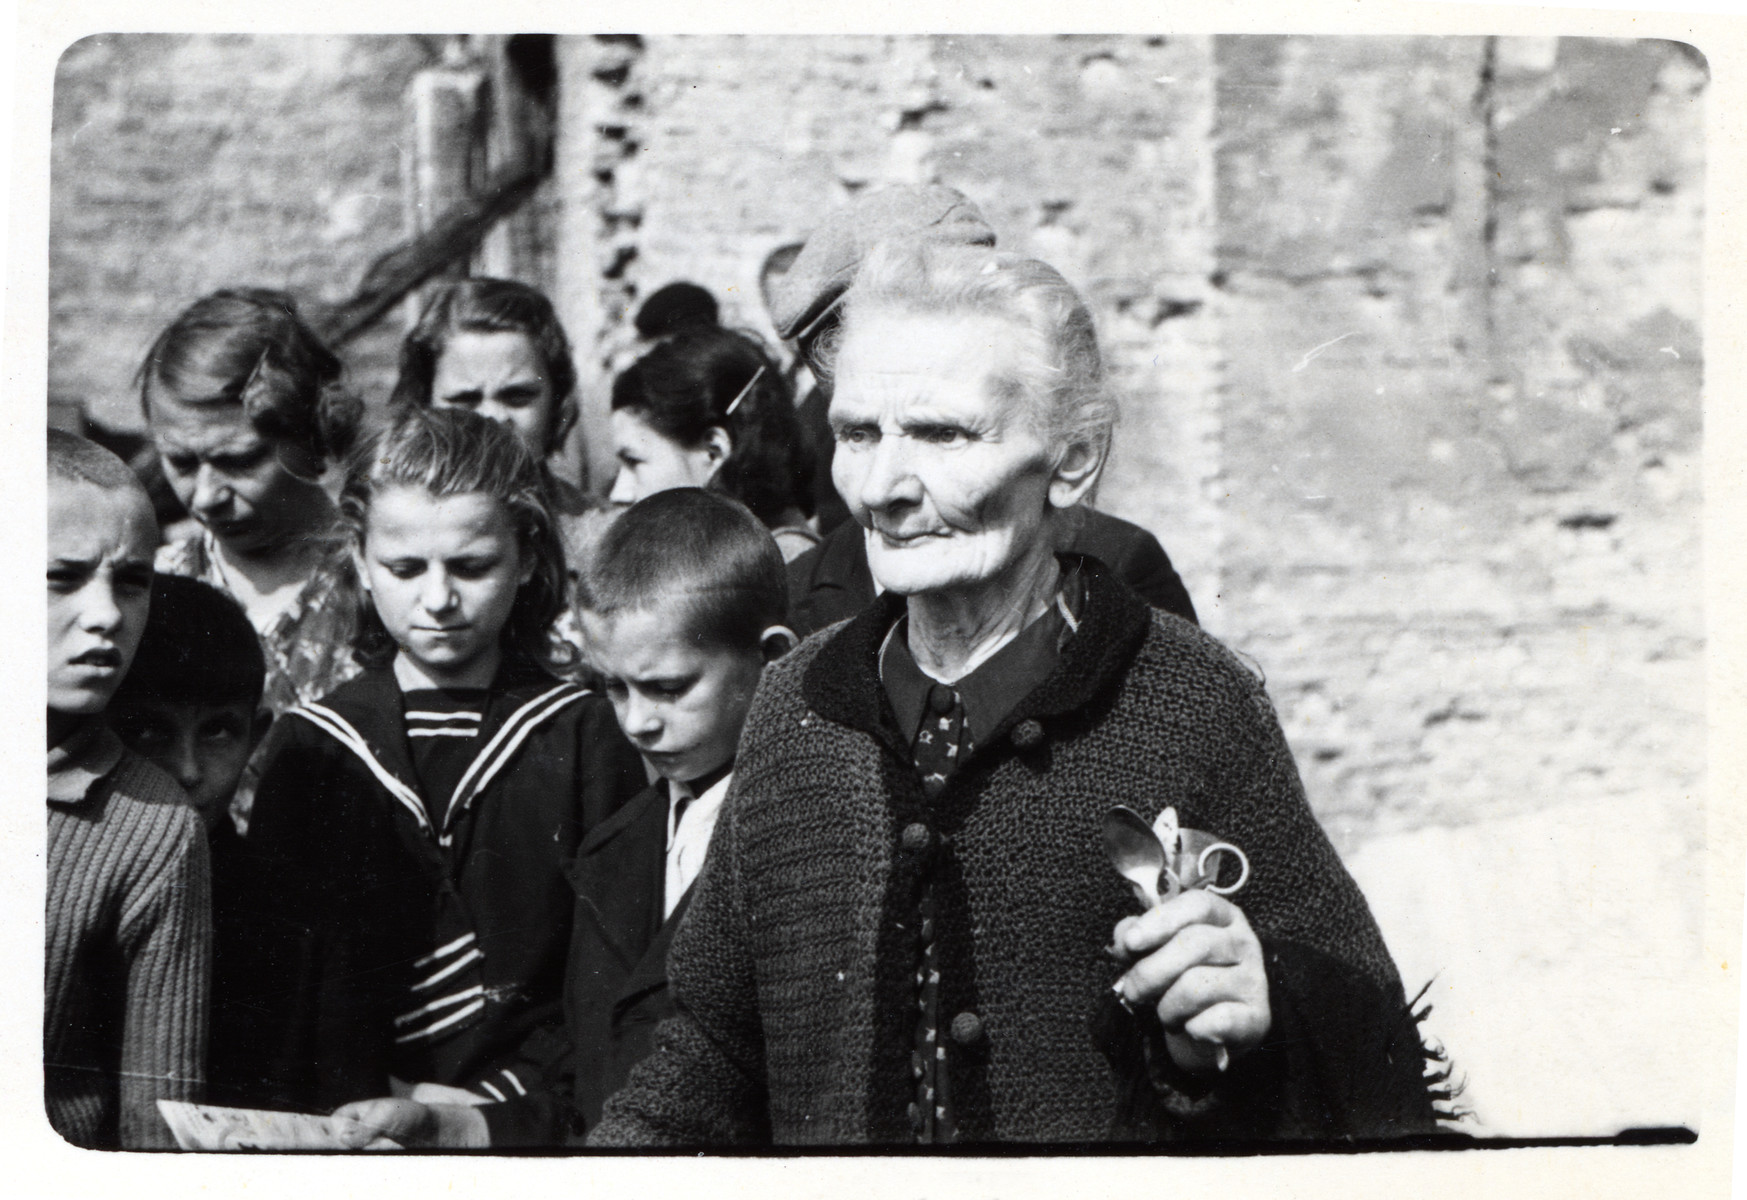 An elderly Polish woman, standing in front of a group of children, holds two silver spoons and a pair of scissors, all that remained of her home after it was destroyed in a German air raid during the siege of Warsaw.  The woman's name is Mrs. Jaworska.  Julien Bryan later learned that she died in 1940.